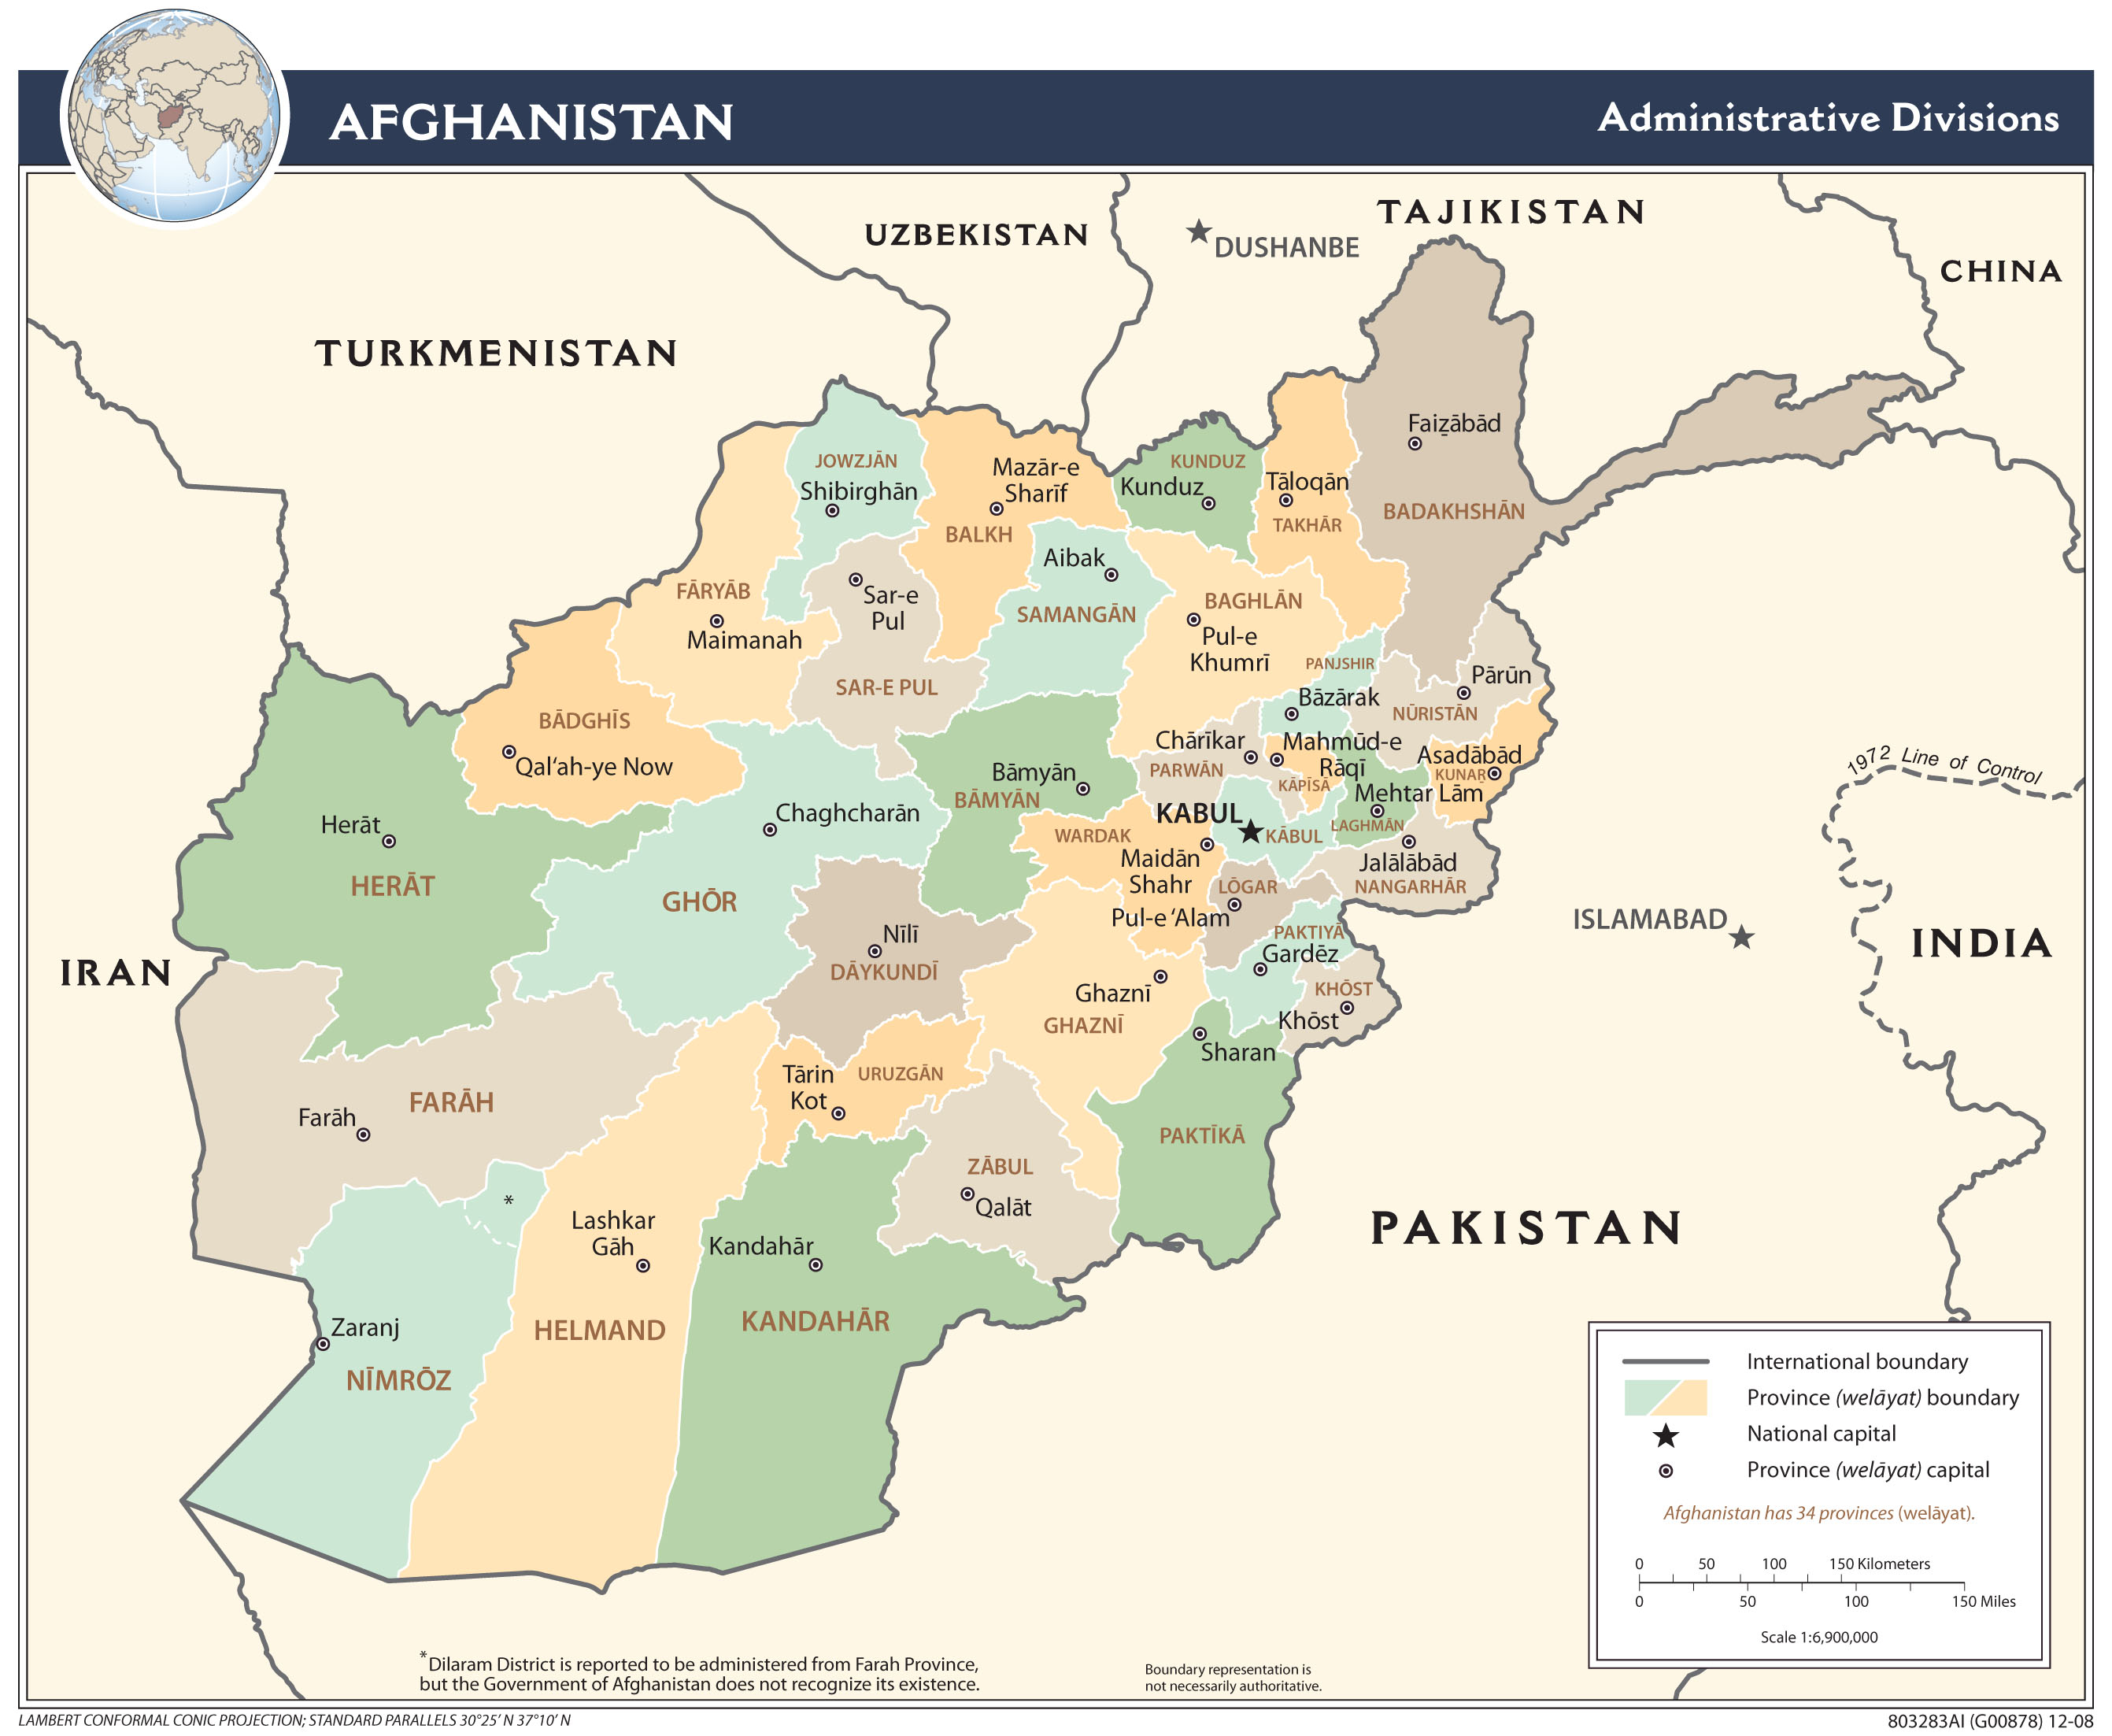 kart over afghanistan Afghanistan Maps   Perry Castañeda Map Collection   UT Library Online kart over afghanistan